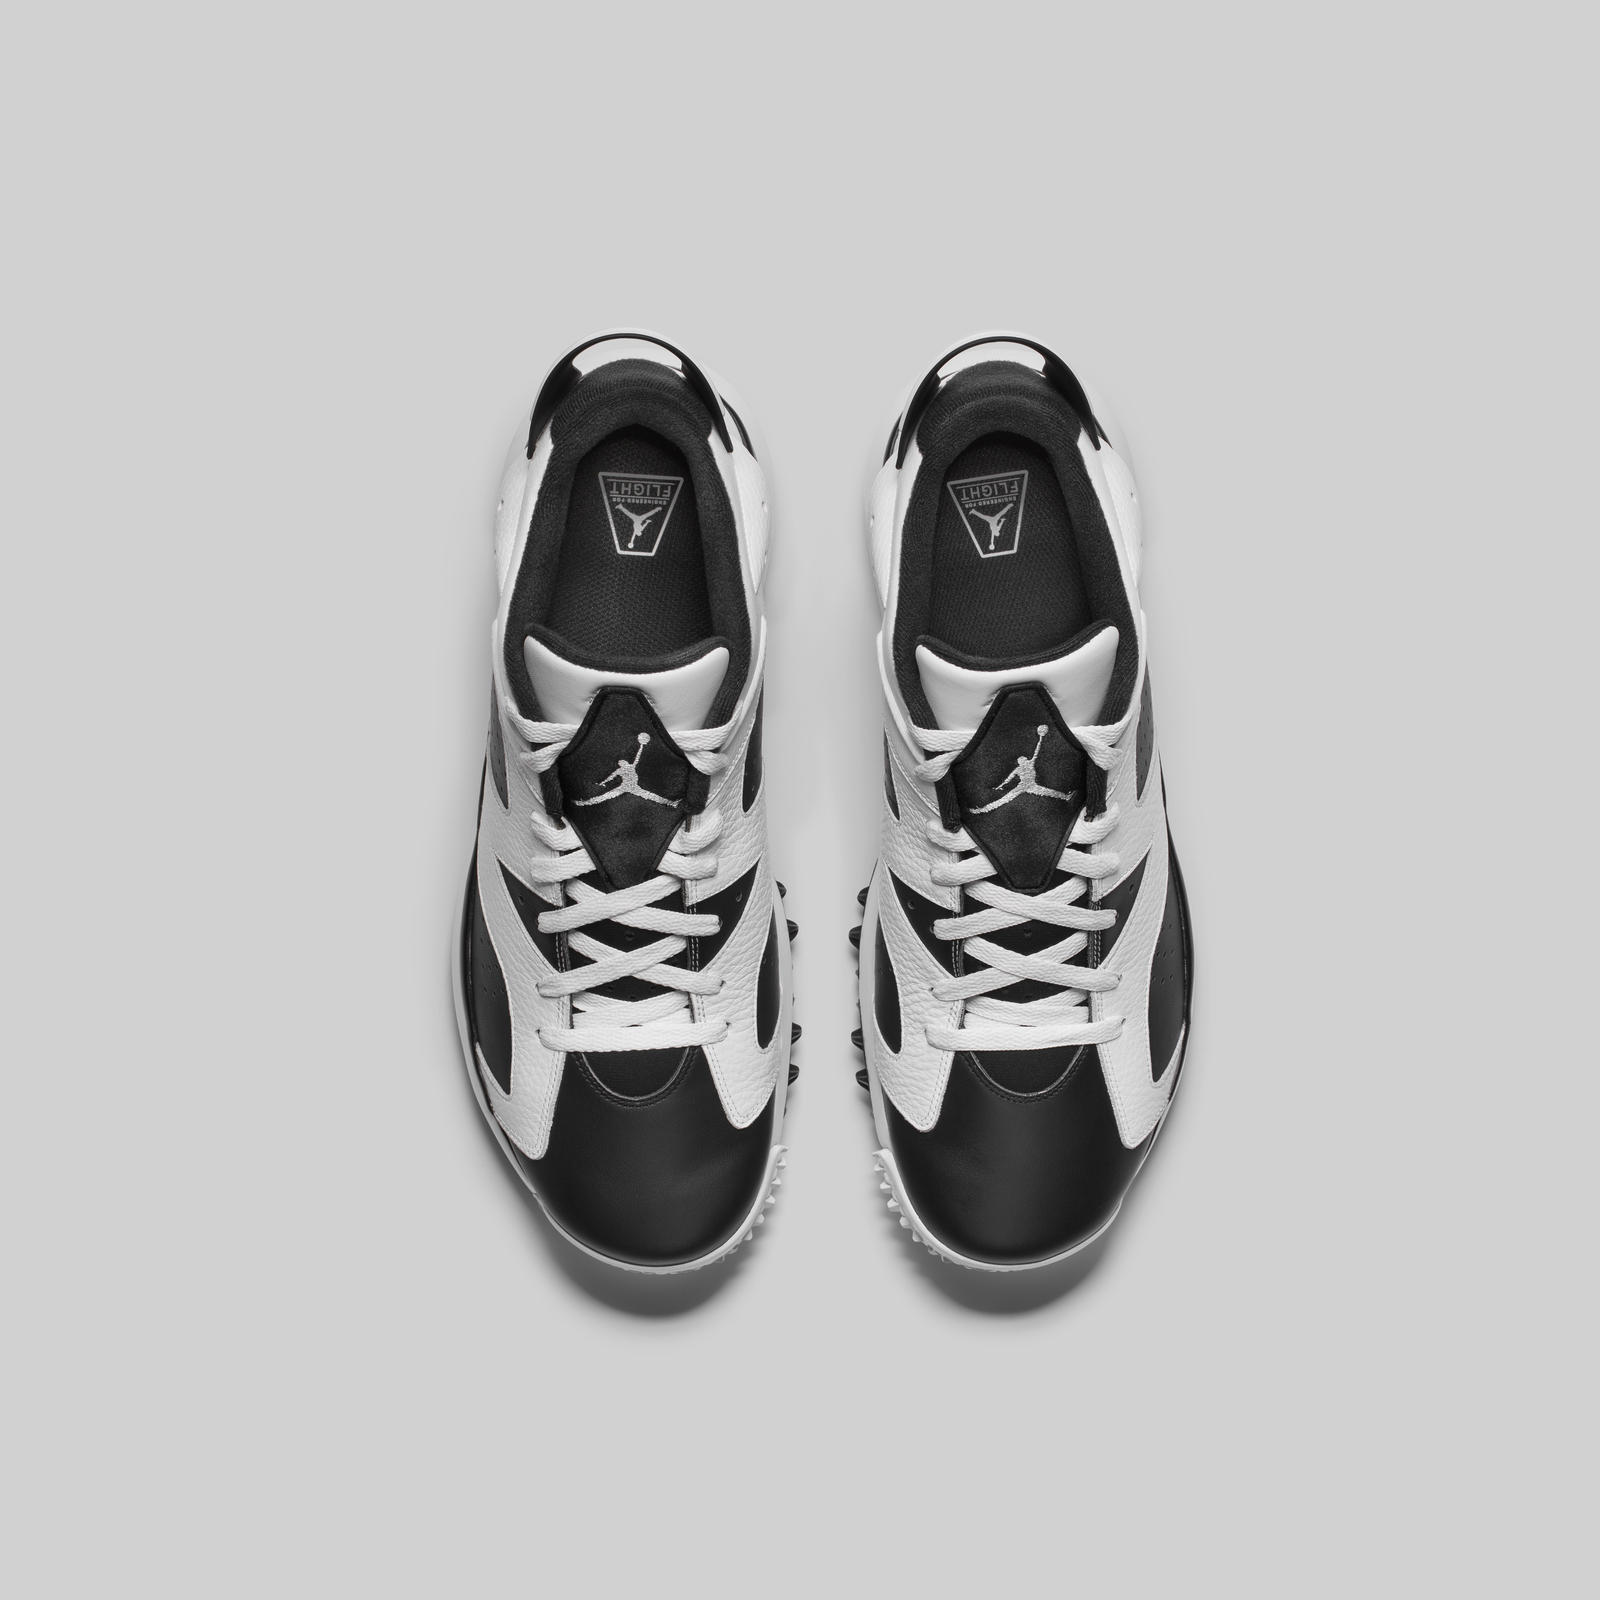 nike shox nz pack navigation premium - Nike News - Jordan Brand Introduces the Air Jordan VI Golf Shoe